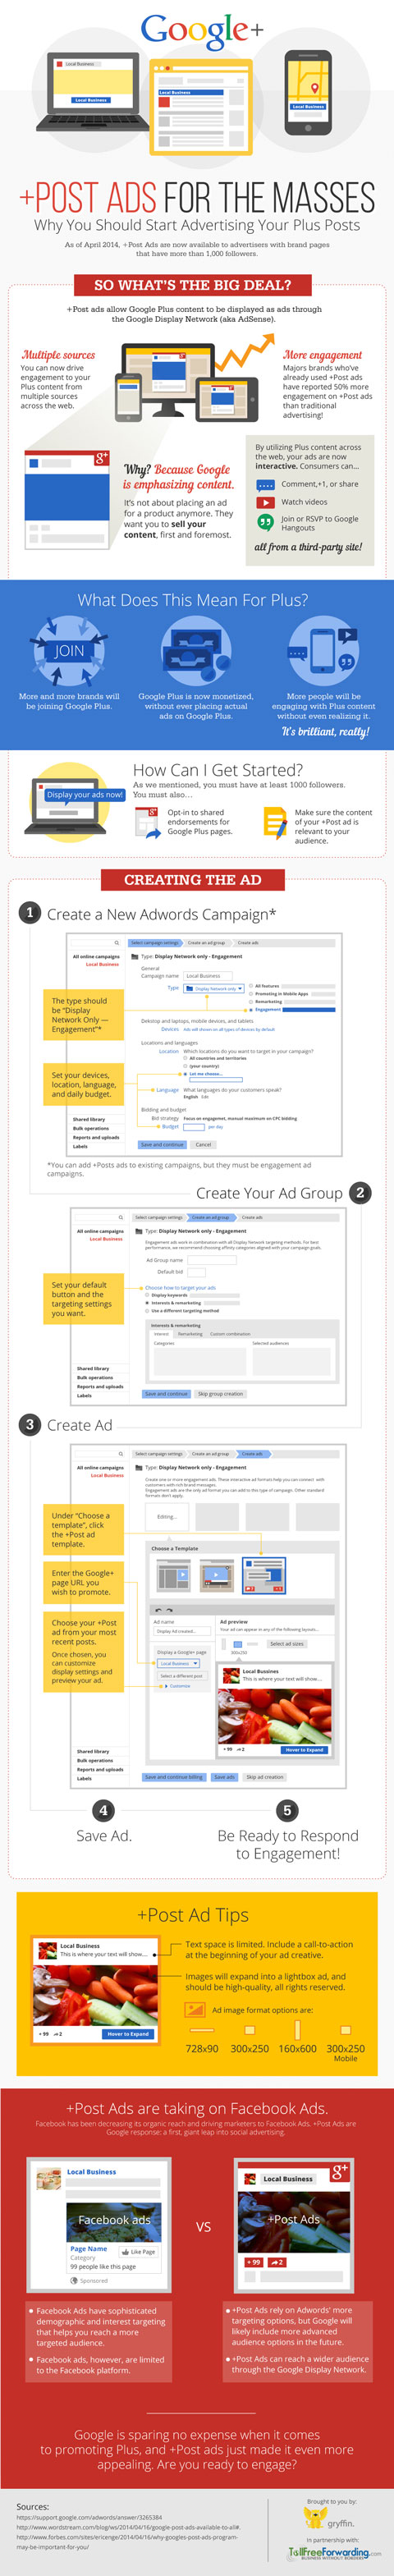 How to Use +Post Ads from Google: What Marketers Need to Know